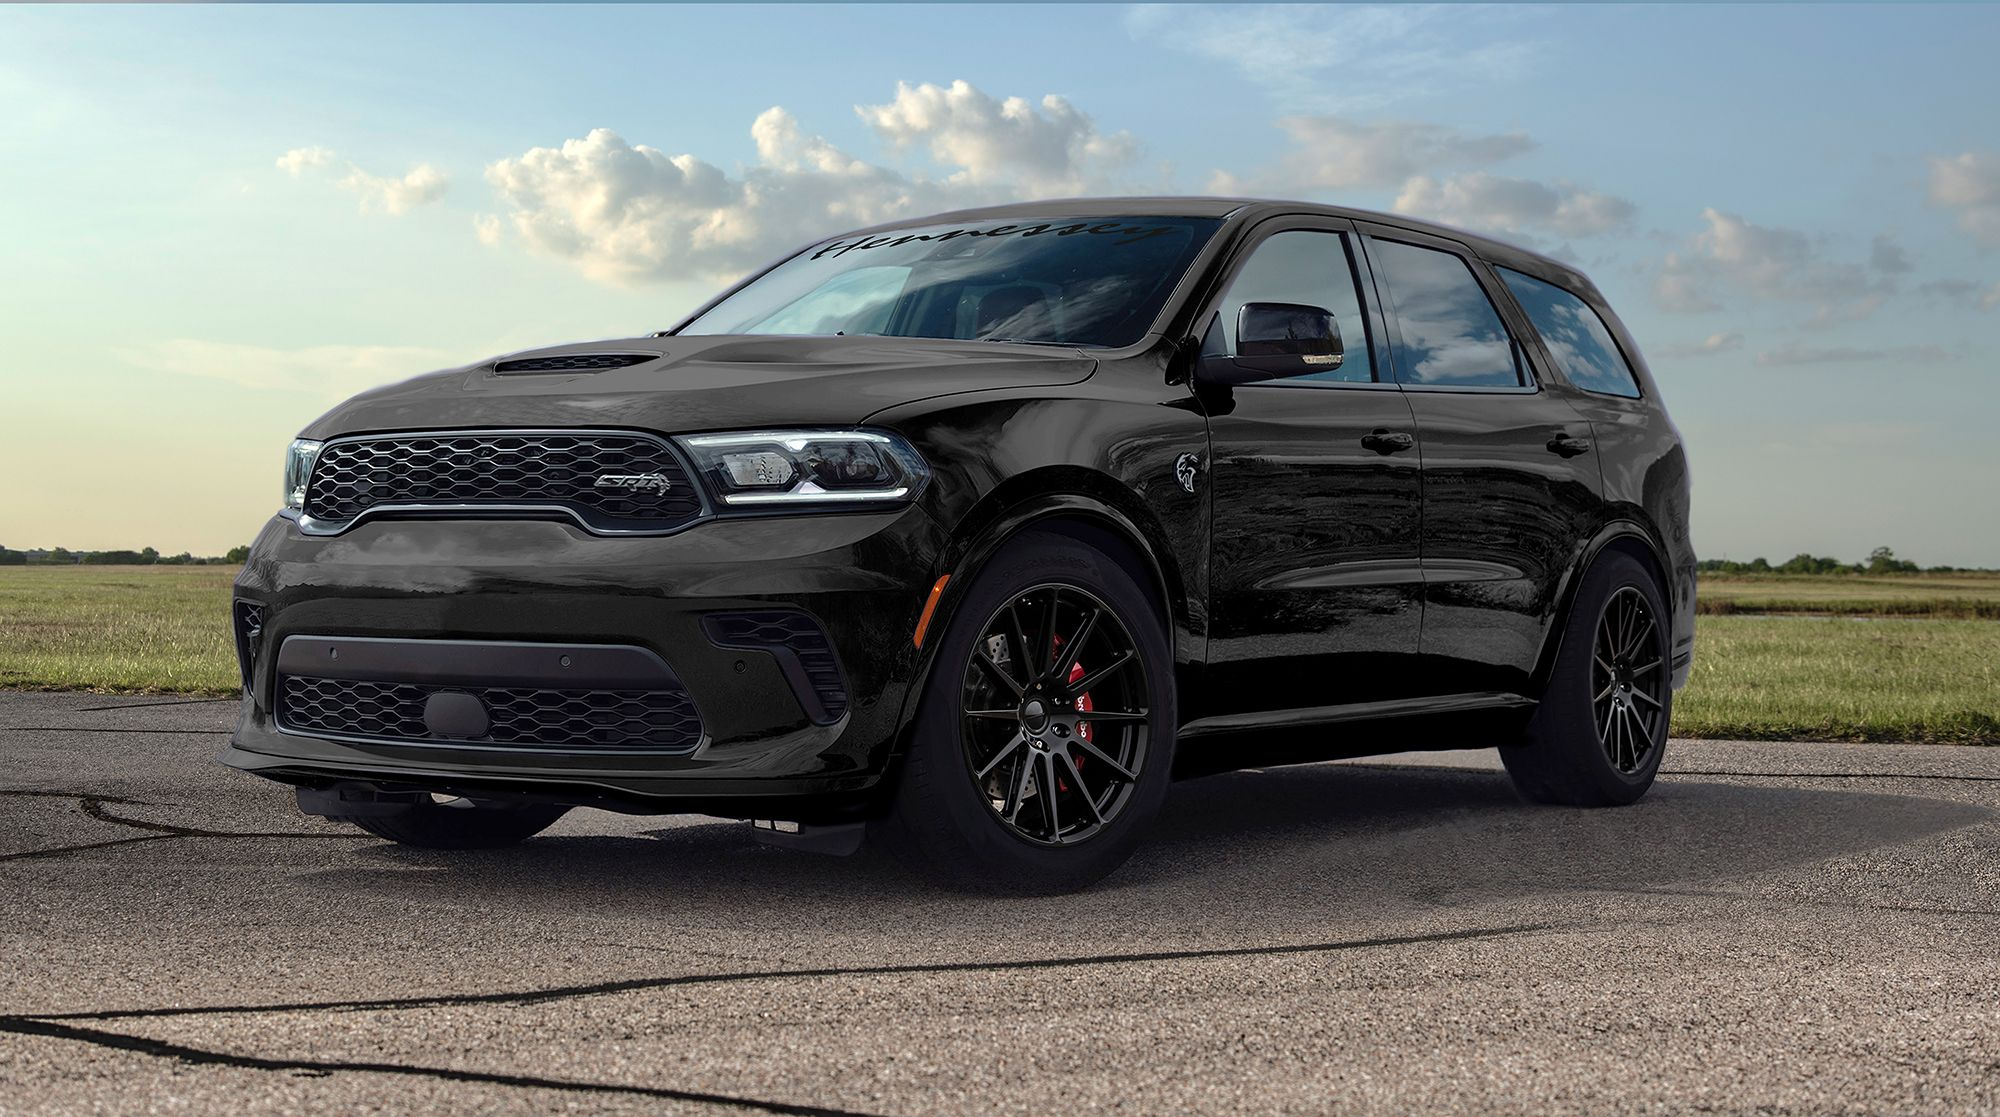 Hennessey 2021 Dodge Durango Srt Hellcat Has 1012 Horsepower